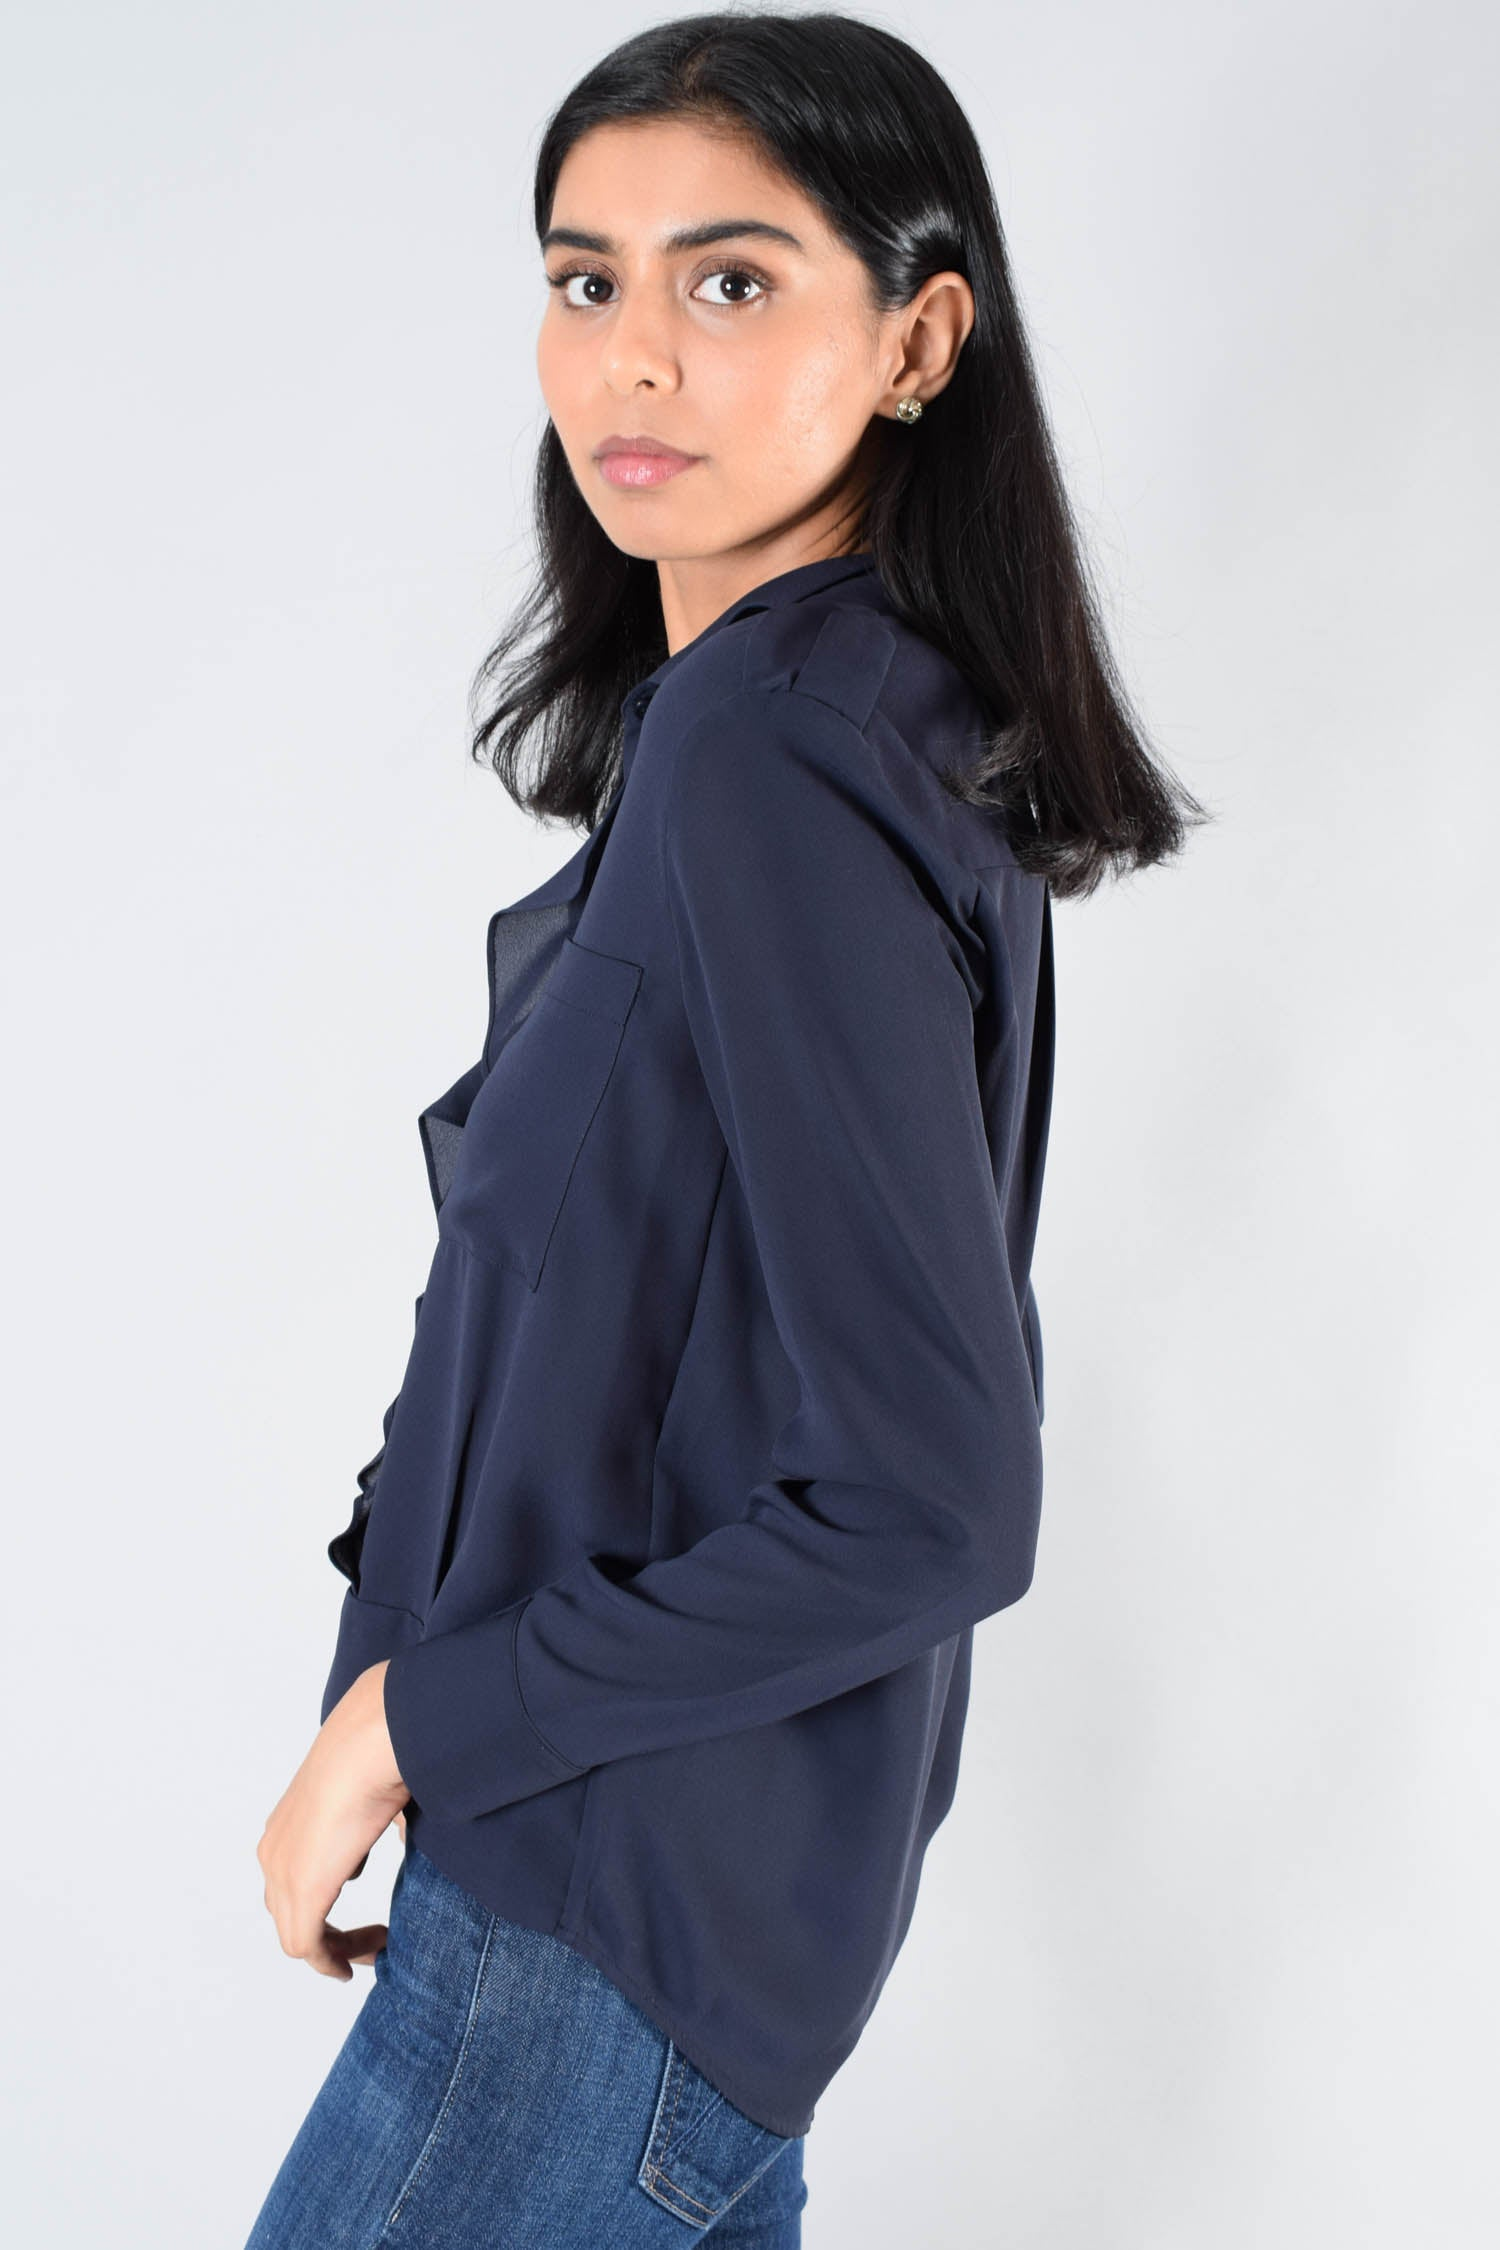 The Kooples Navy Ruffled Button-Up Size S